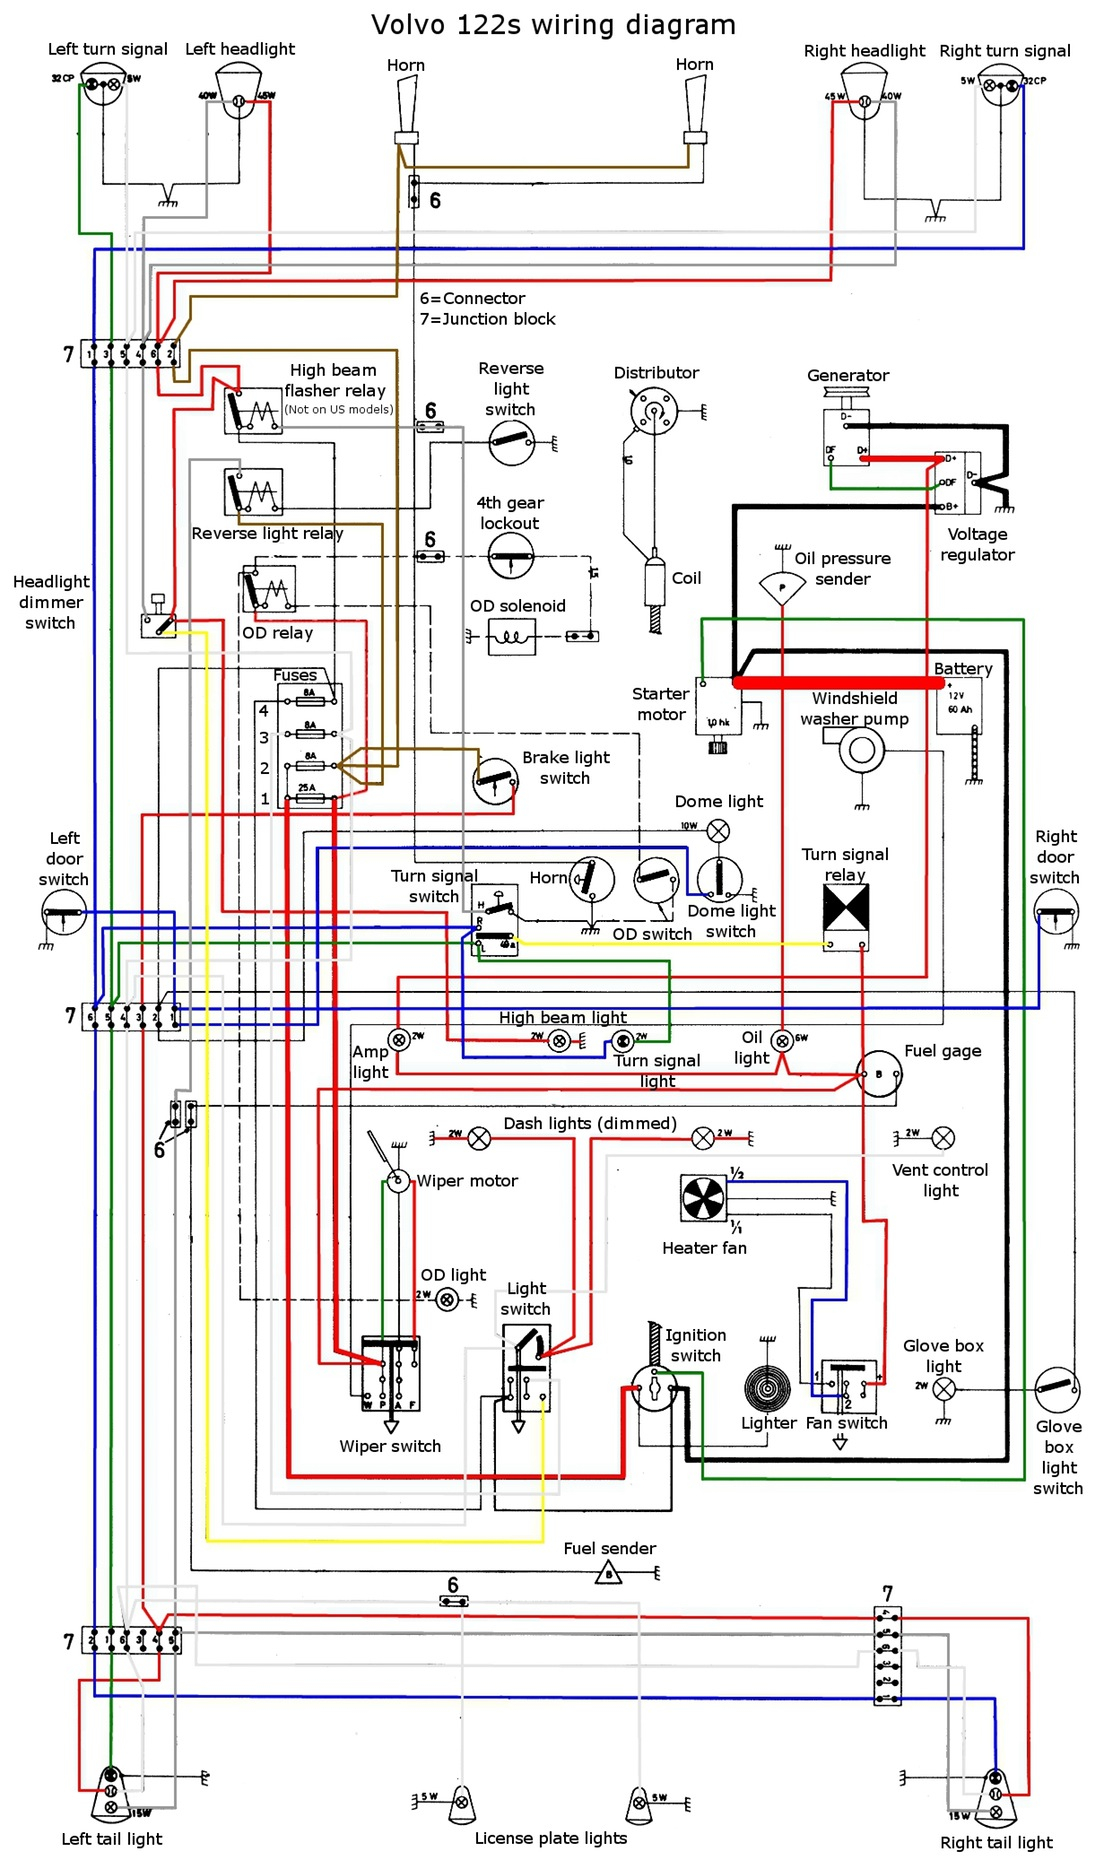 subaru wiring diagram Download-Subaru Wiring Diagram Color Codes Inspirational Yamaha Sr500e Wiring Diagram for the I E Model with Color Code Its 7-c